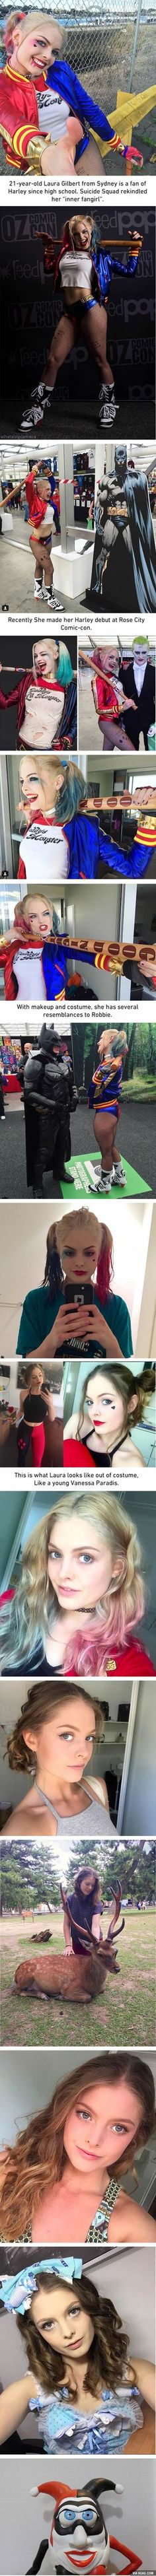 Among All The Harley Quinn Cosplays Out There, This Might Be The Closest One